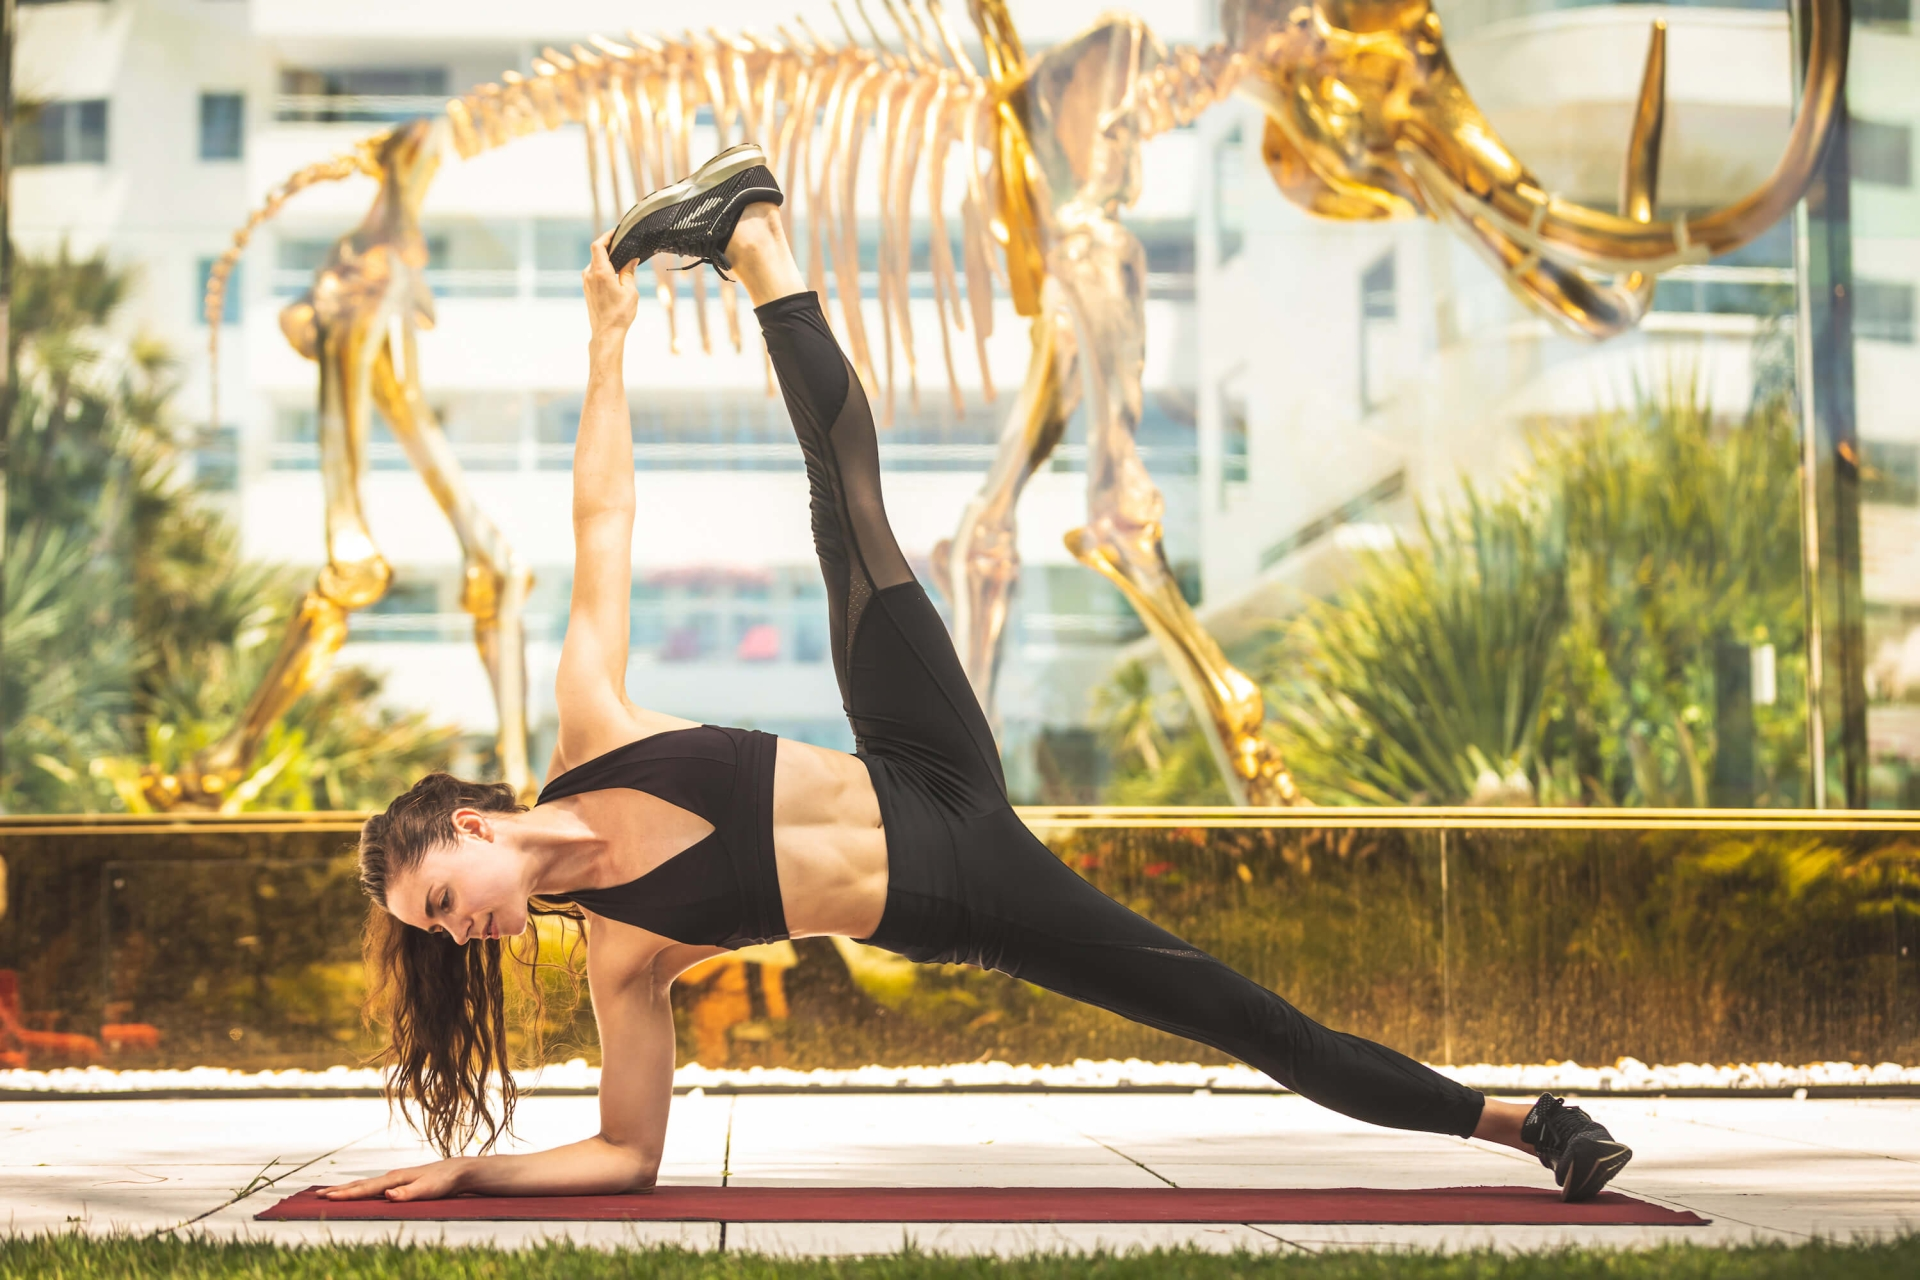 woman wearing black workout gear stretches leg in side plank in front of mammoth skeleton installation